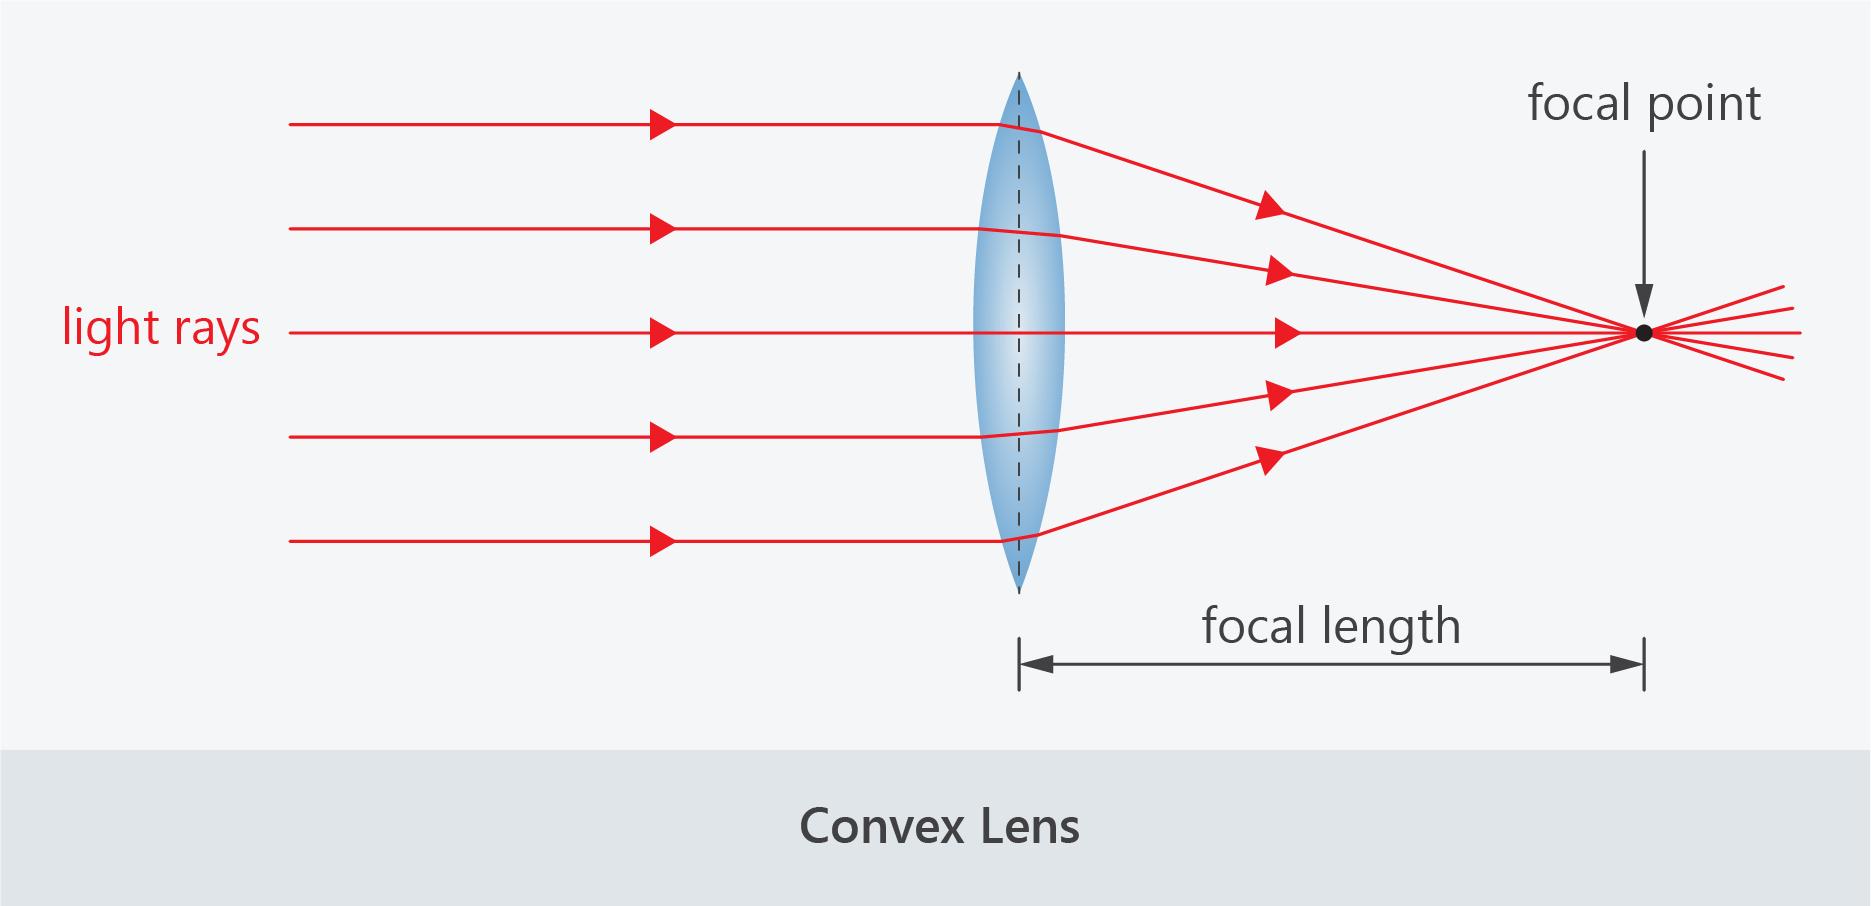 3 Lenses And Refraction Of Light